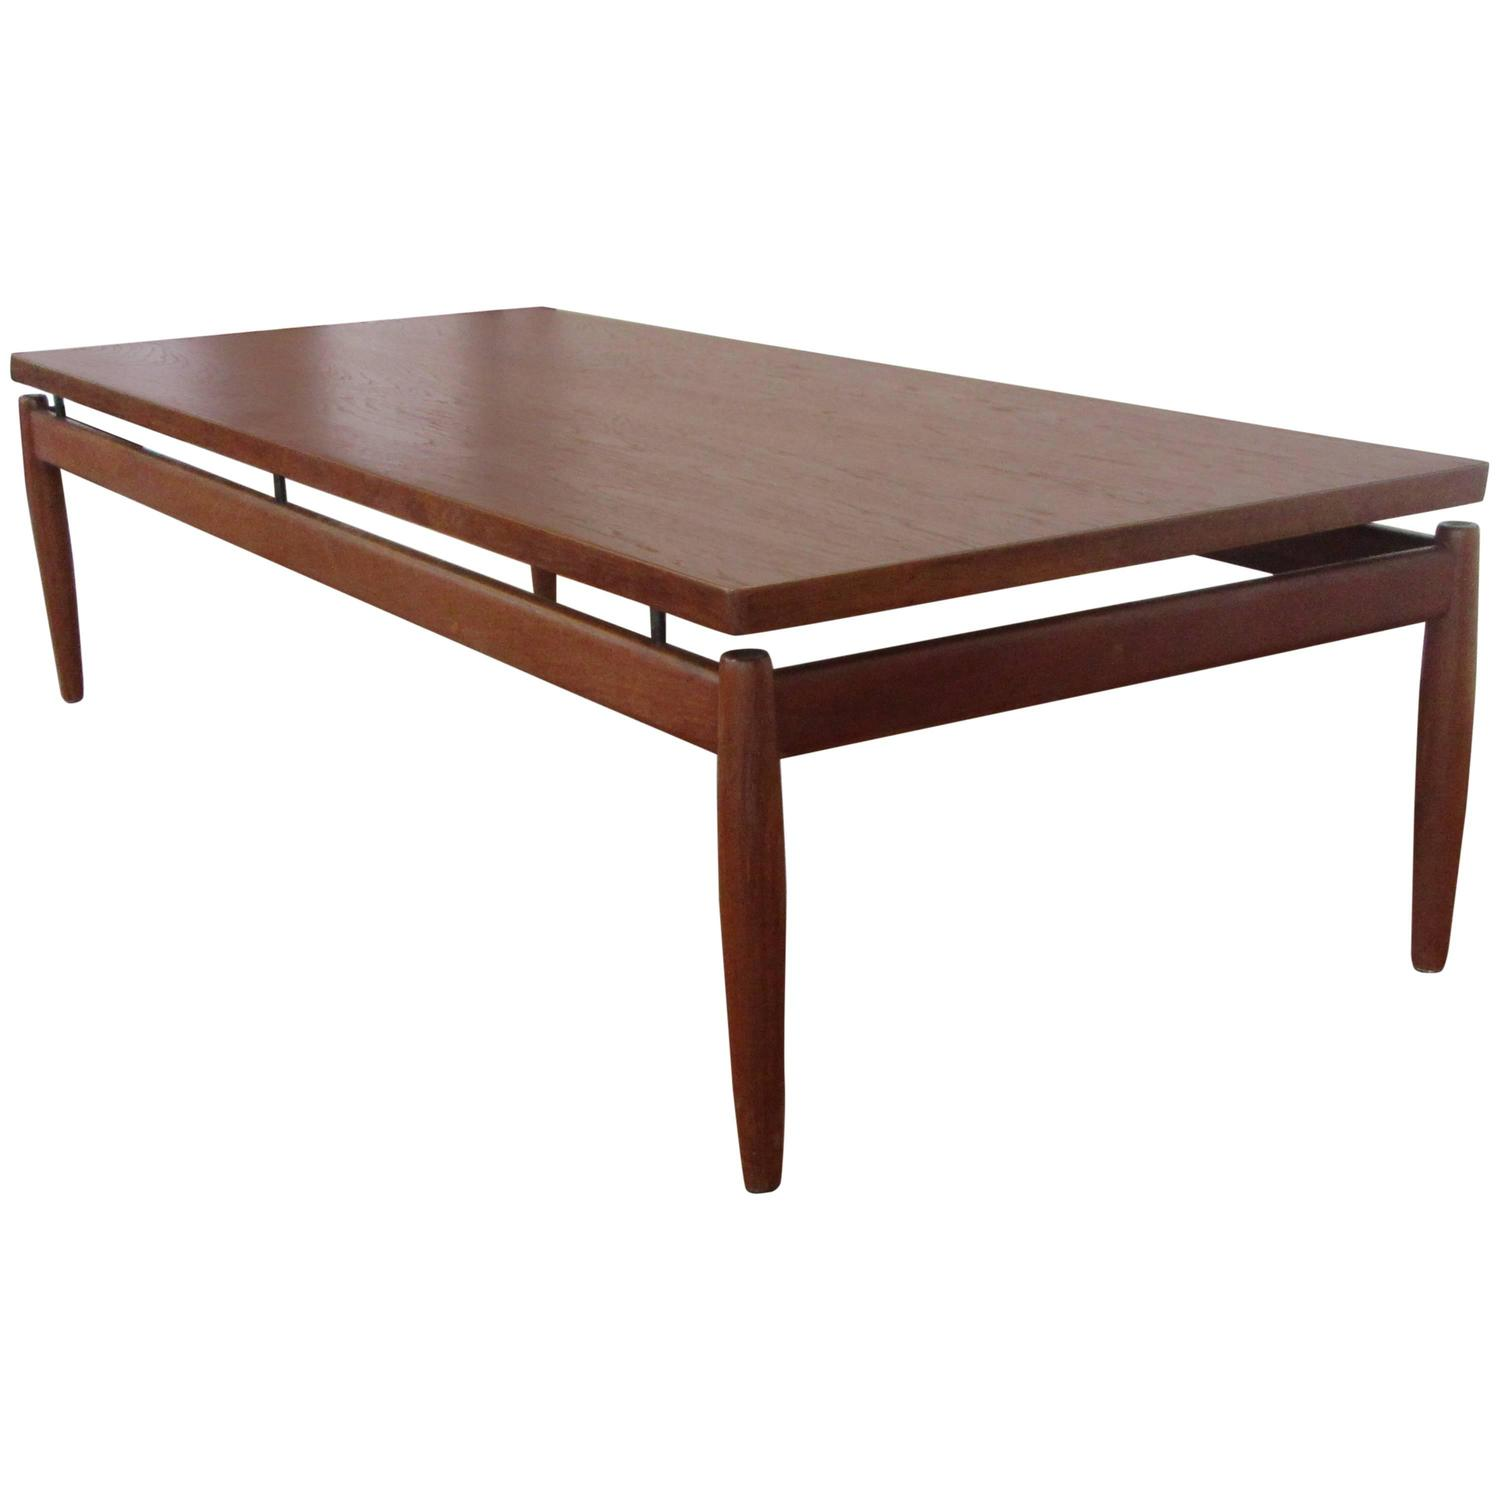 Greta Jalk Teak Coffee Table by France and Son at 1stdibs